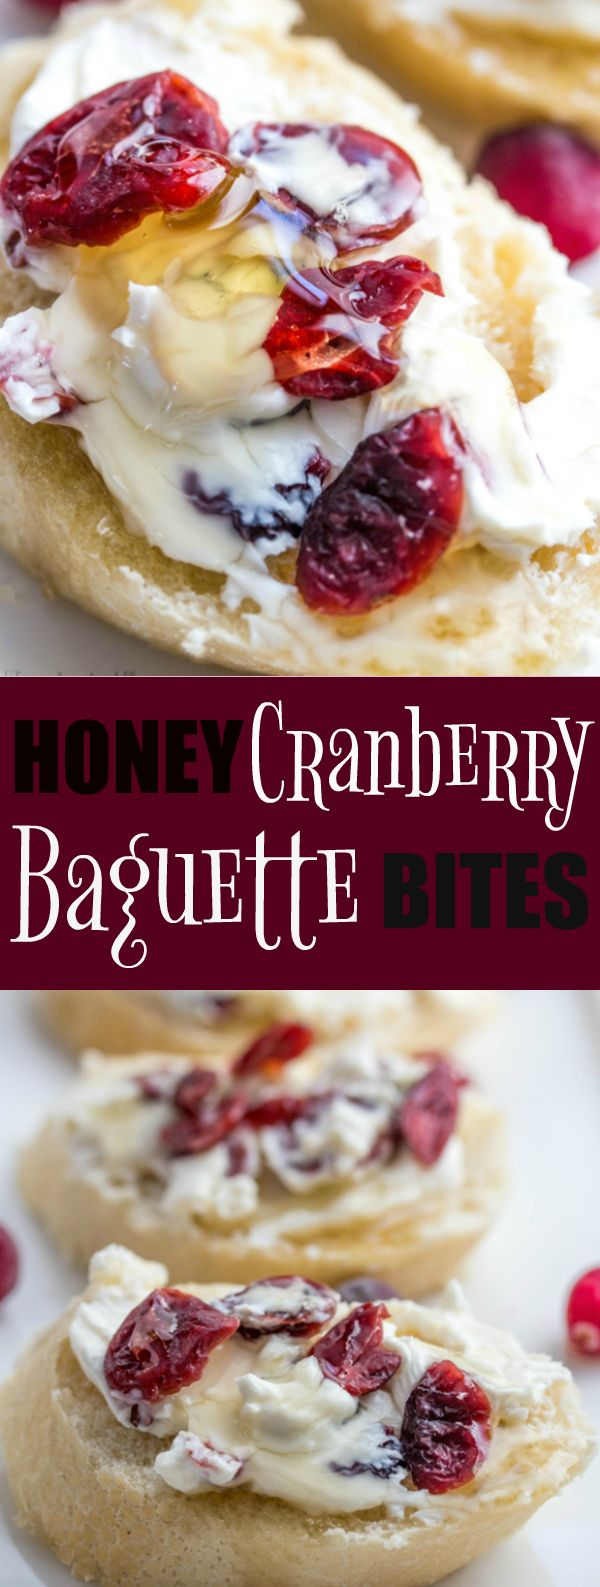 Honey Cranberry Baguette Bites are a quick easy appetizer that is equally tasty!